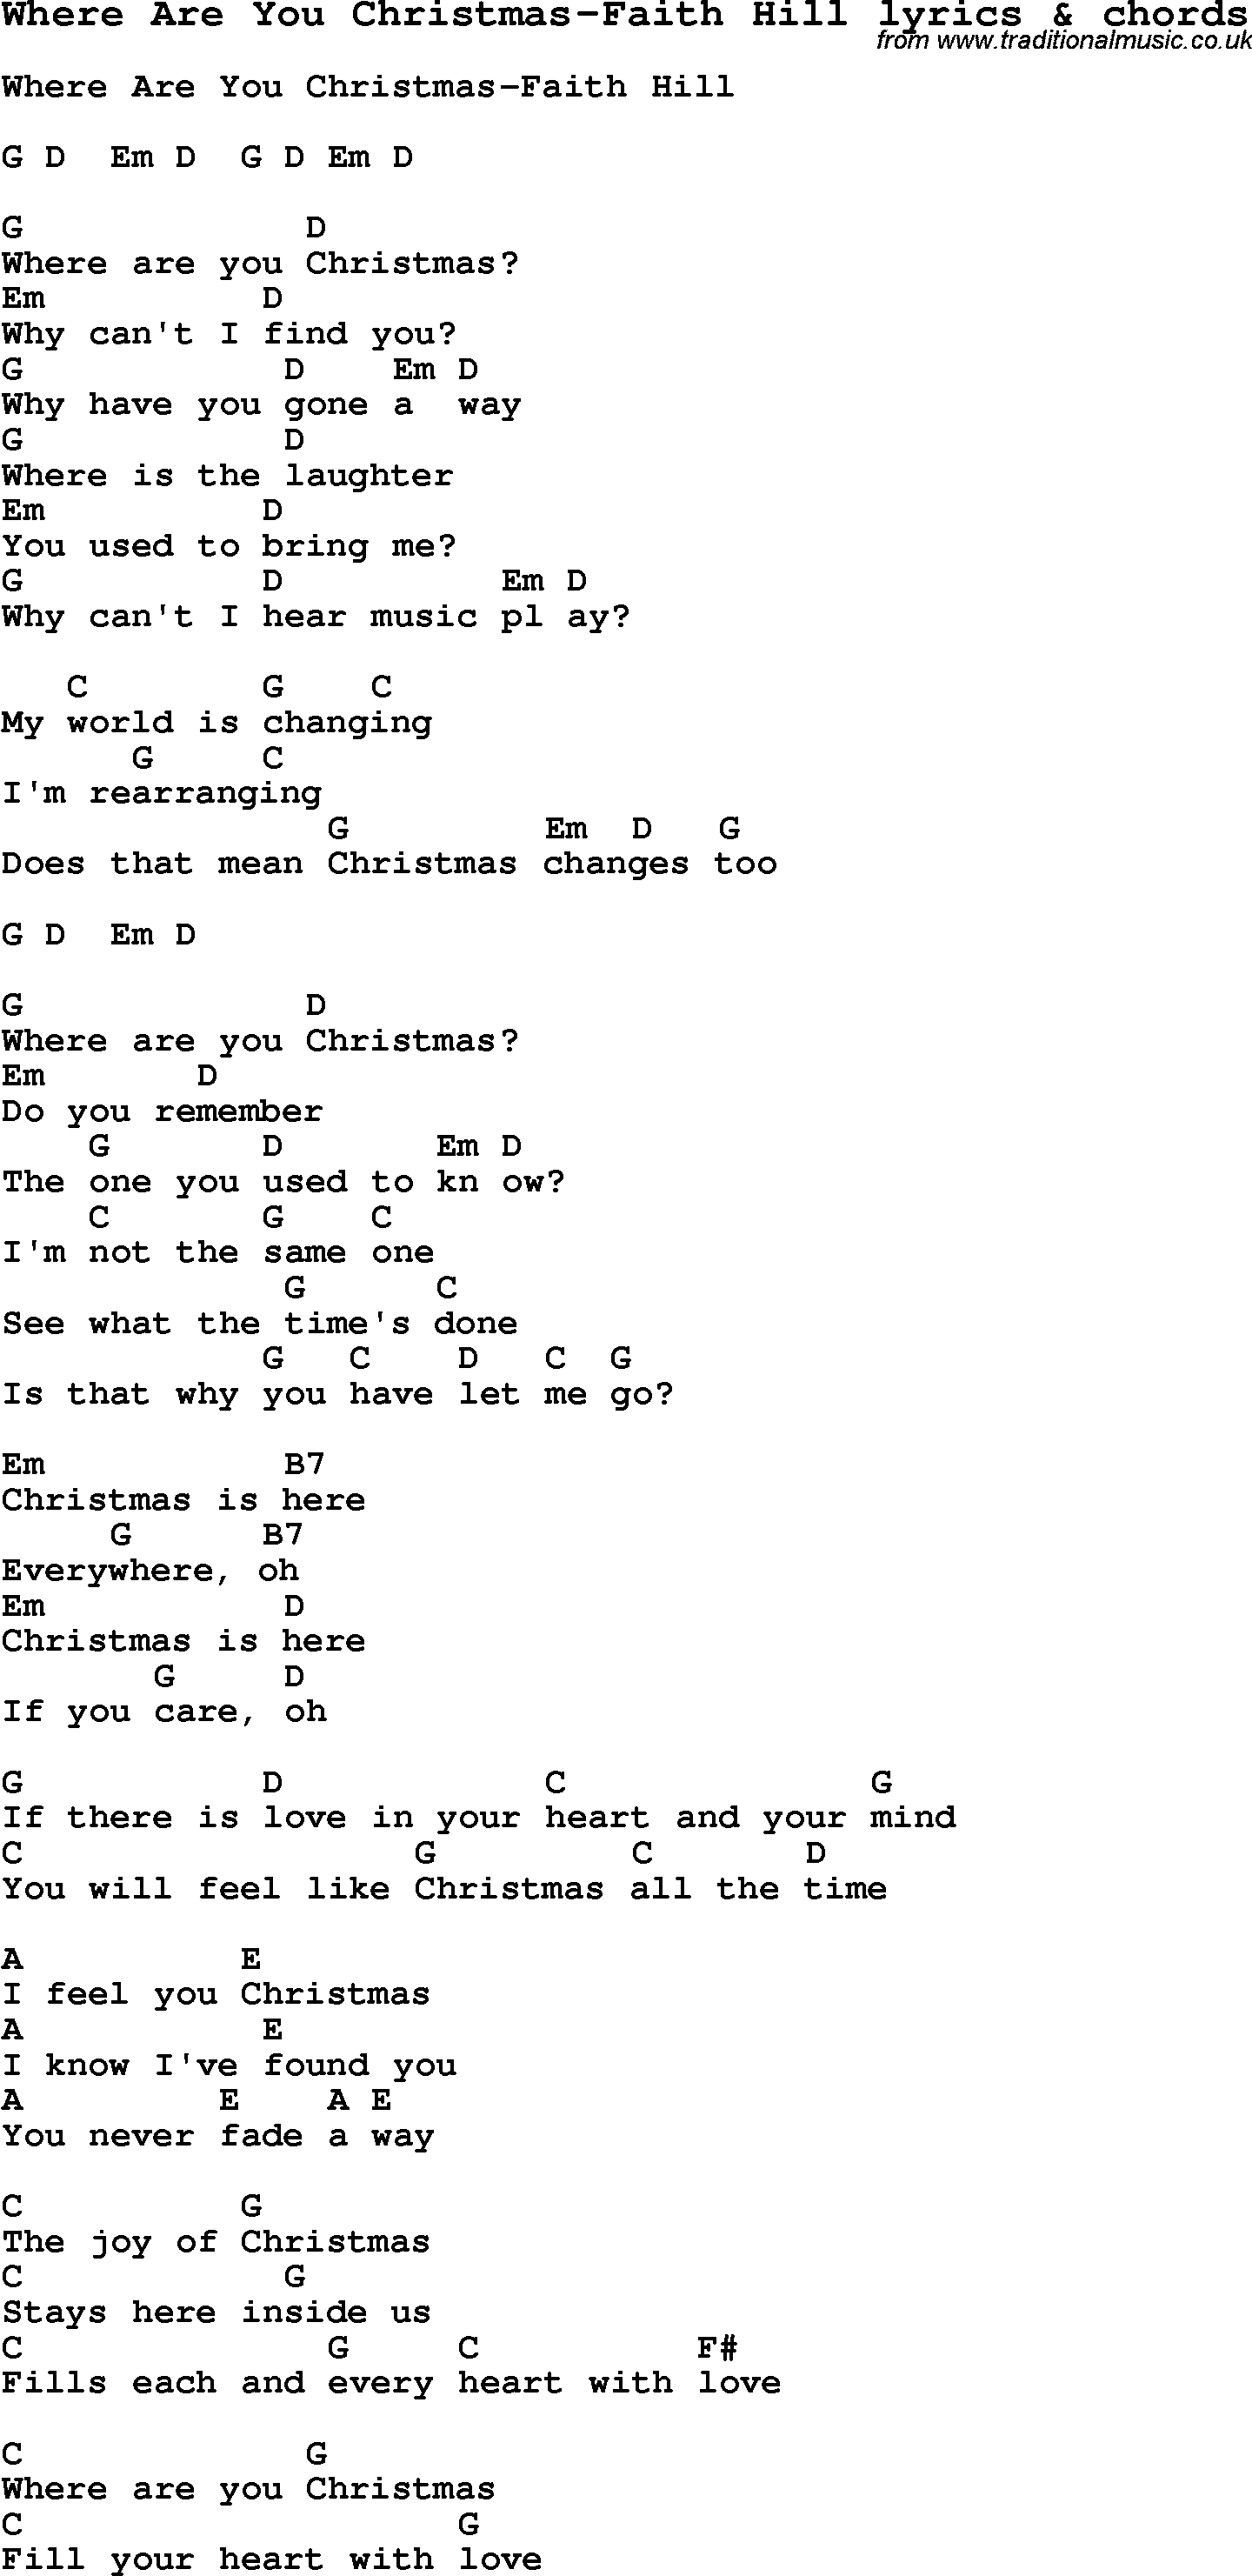 Love Song Lyrics for:Where Are You Christmas-Faith Hill with chords.